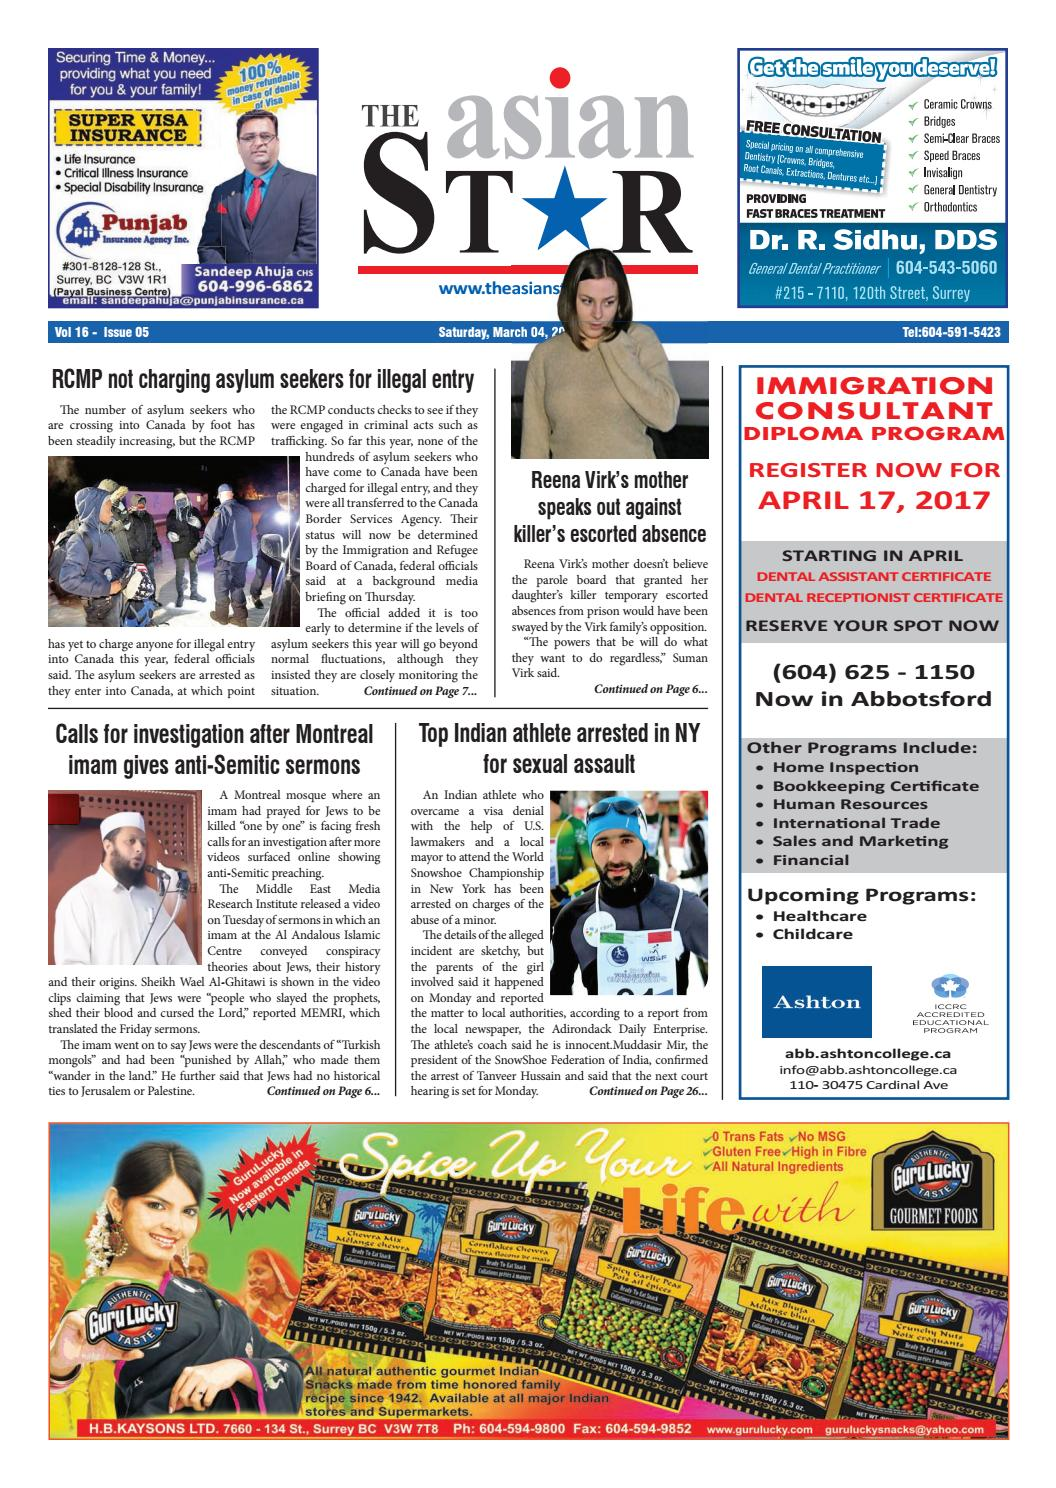 Asian Star - March 04, 2017 by The Asian Star Newspaper - issuu